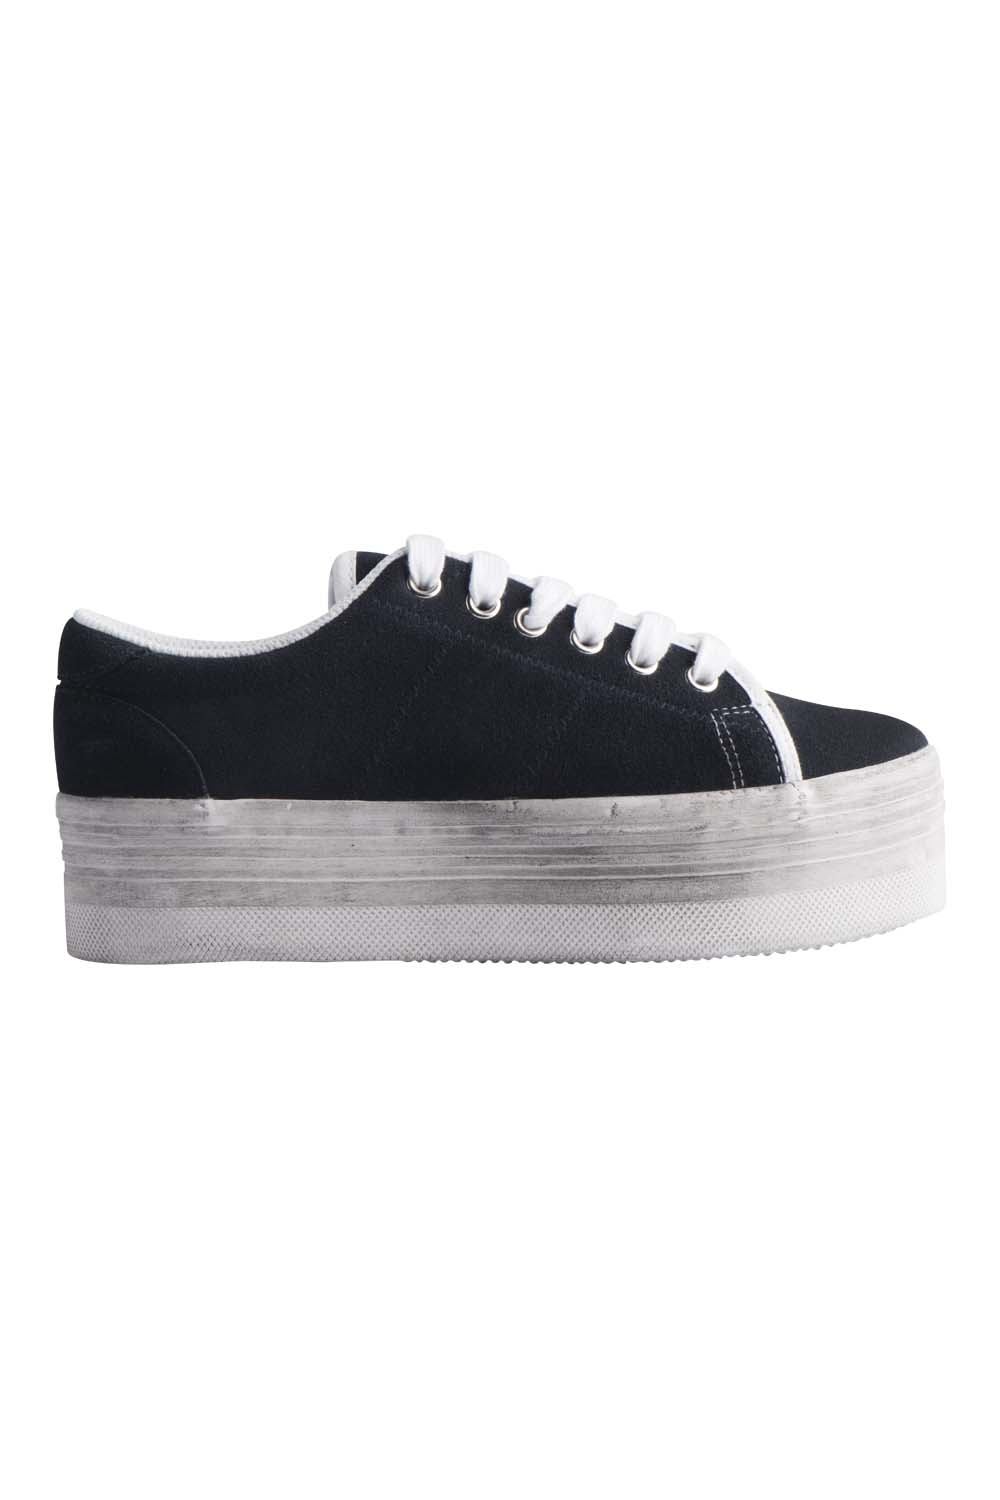 JEFFREY CAMPBELL SNEAKERS - ZOMG NAVY SUEDE.jpg